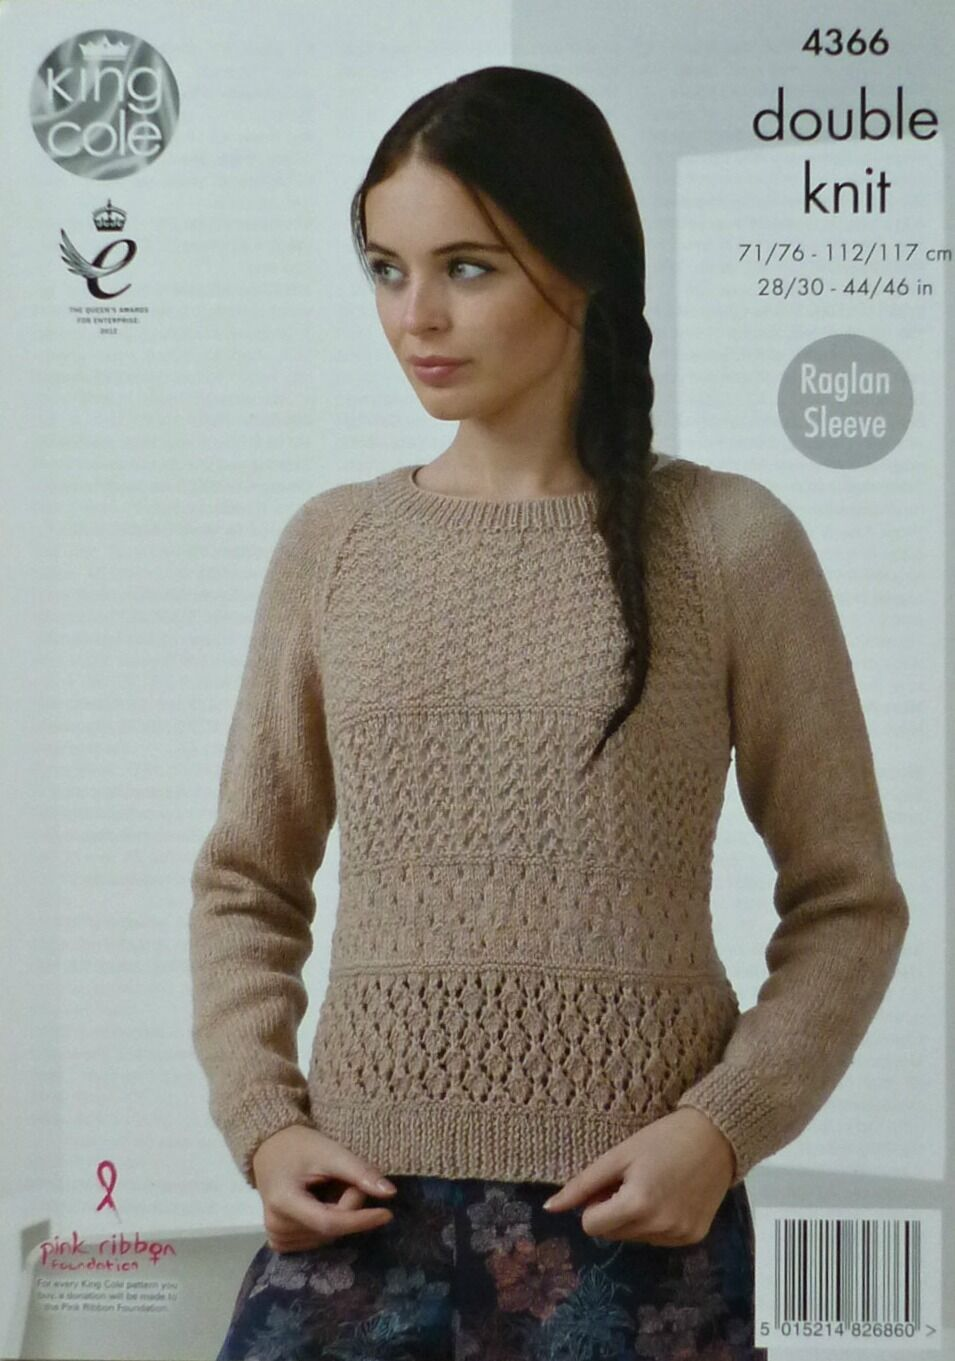 2a6a48b9cc9452 Knitting Pattern 4366 Ladies Cardigan   Sweater in King Cole Baby ...